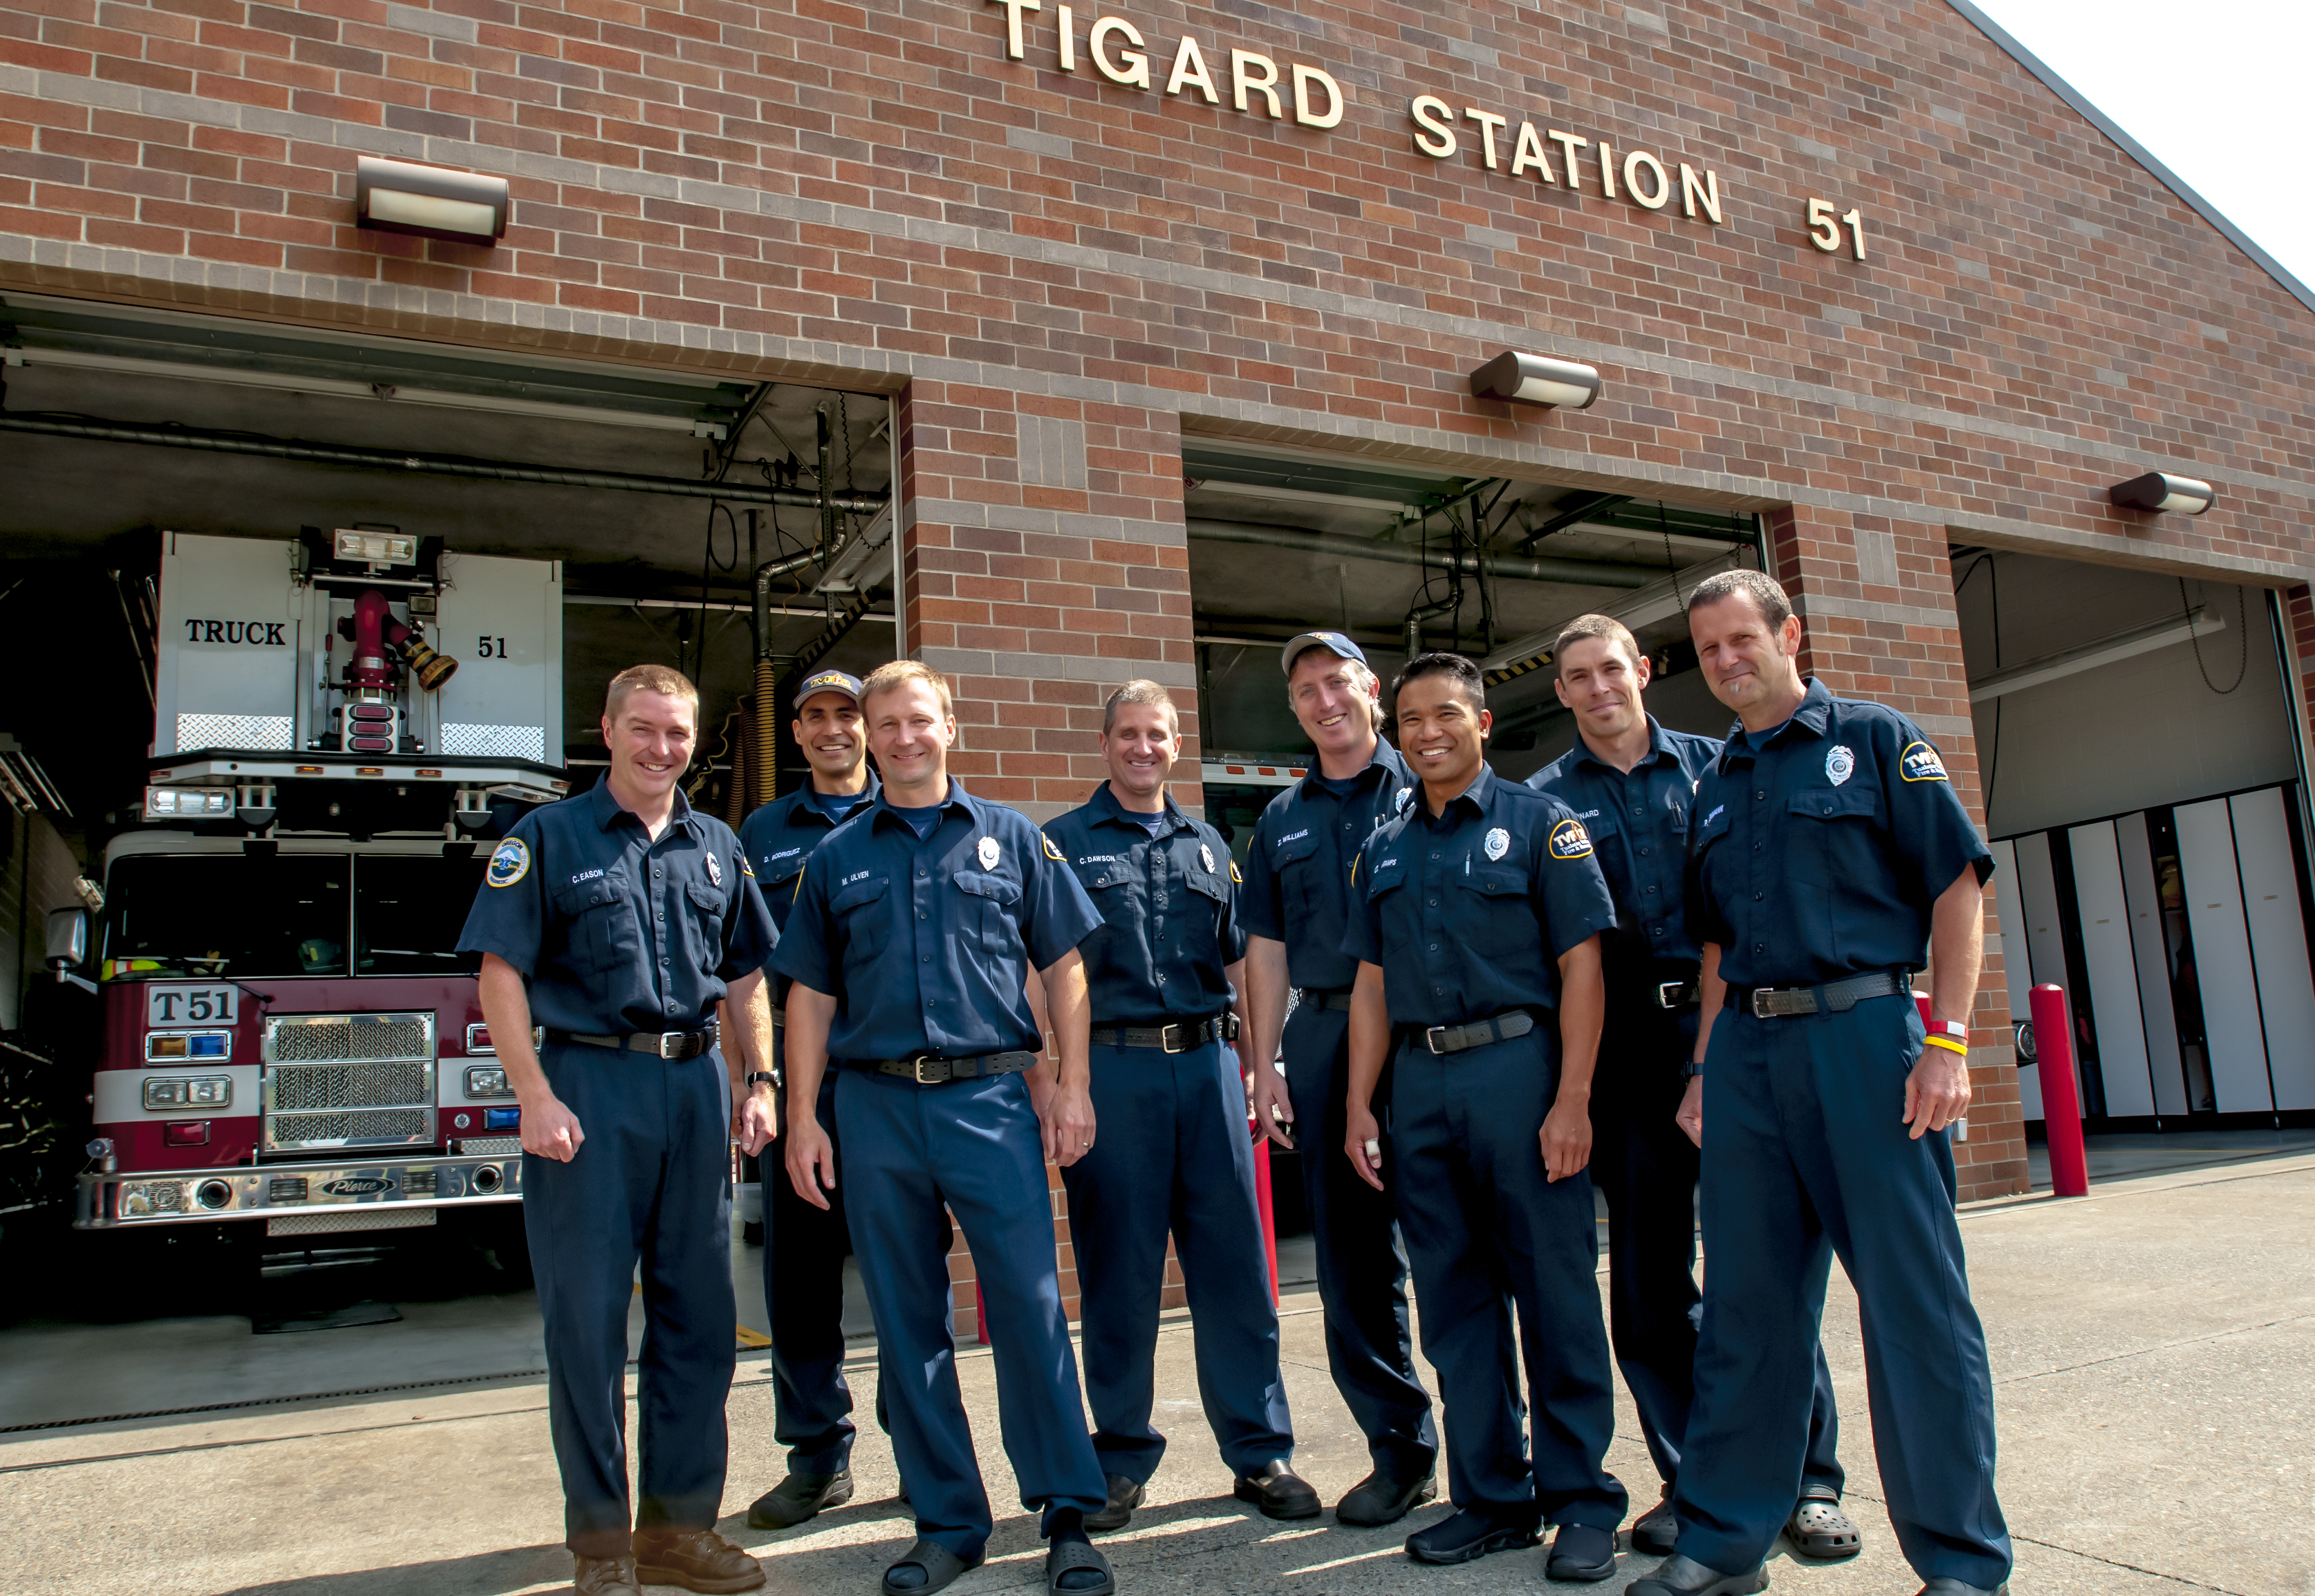 Tigard Station 51